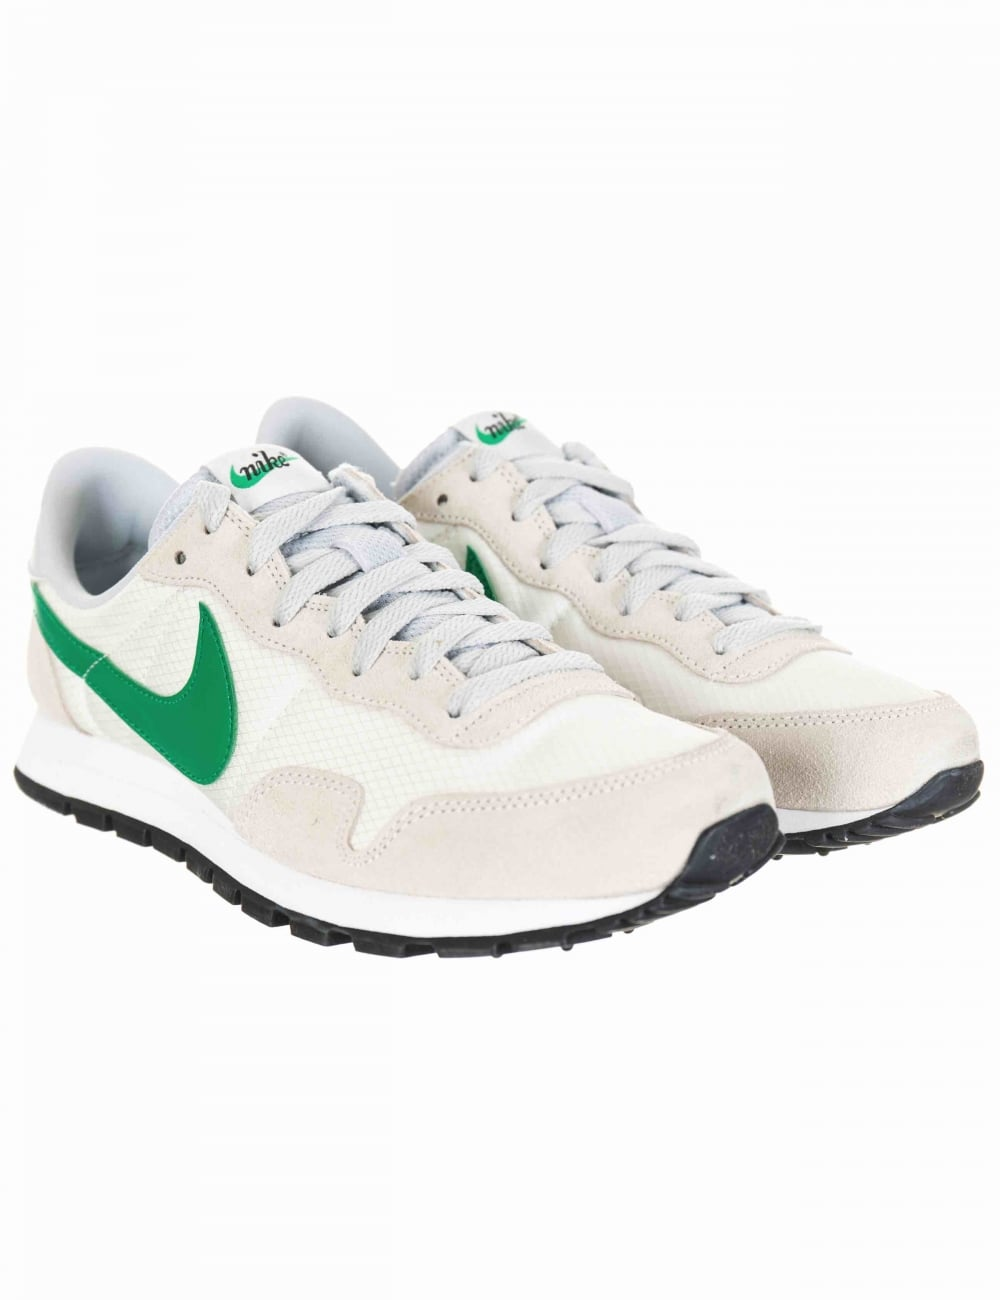 Air Pegasus 83 Shoes - Summit White/Stadium Green